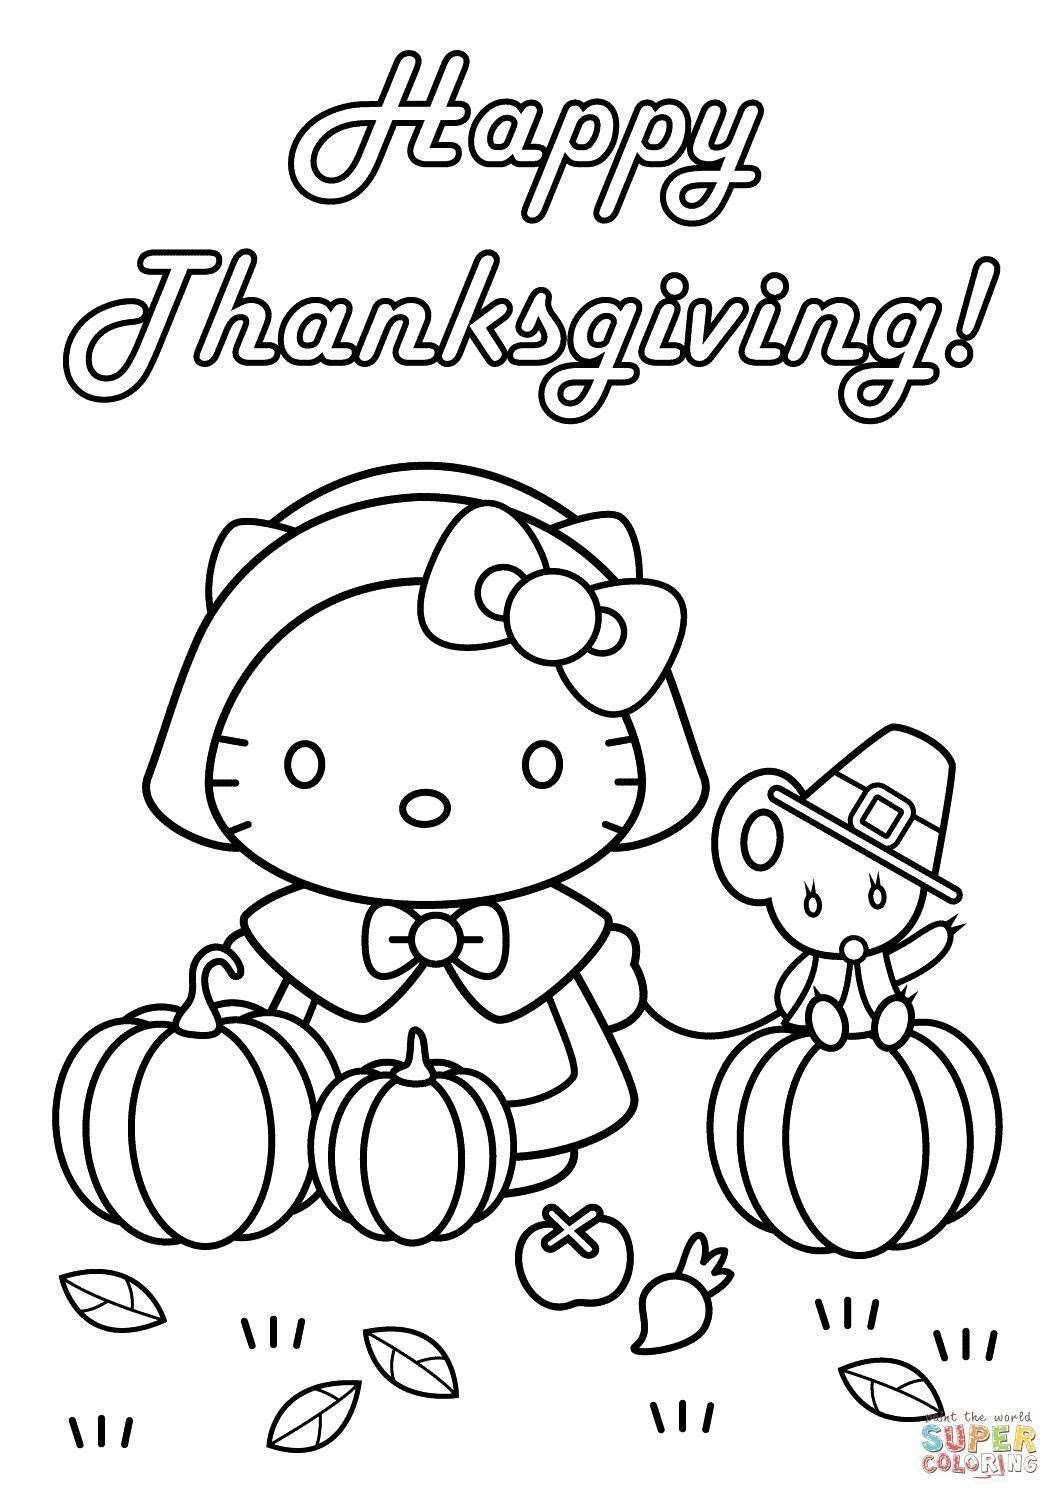 Easy Thanksgiving Coloring Pages at GetColorings.com ...